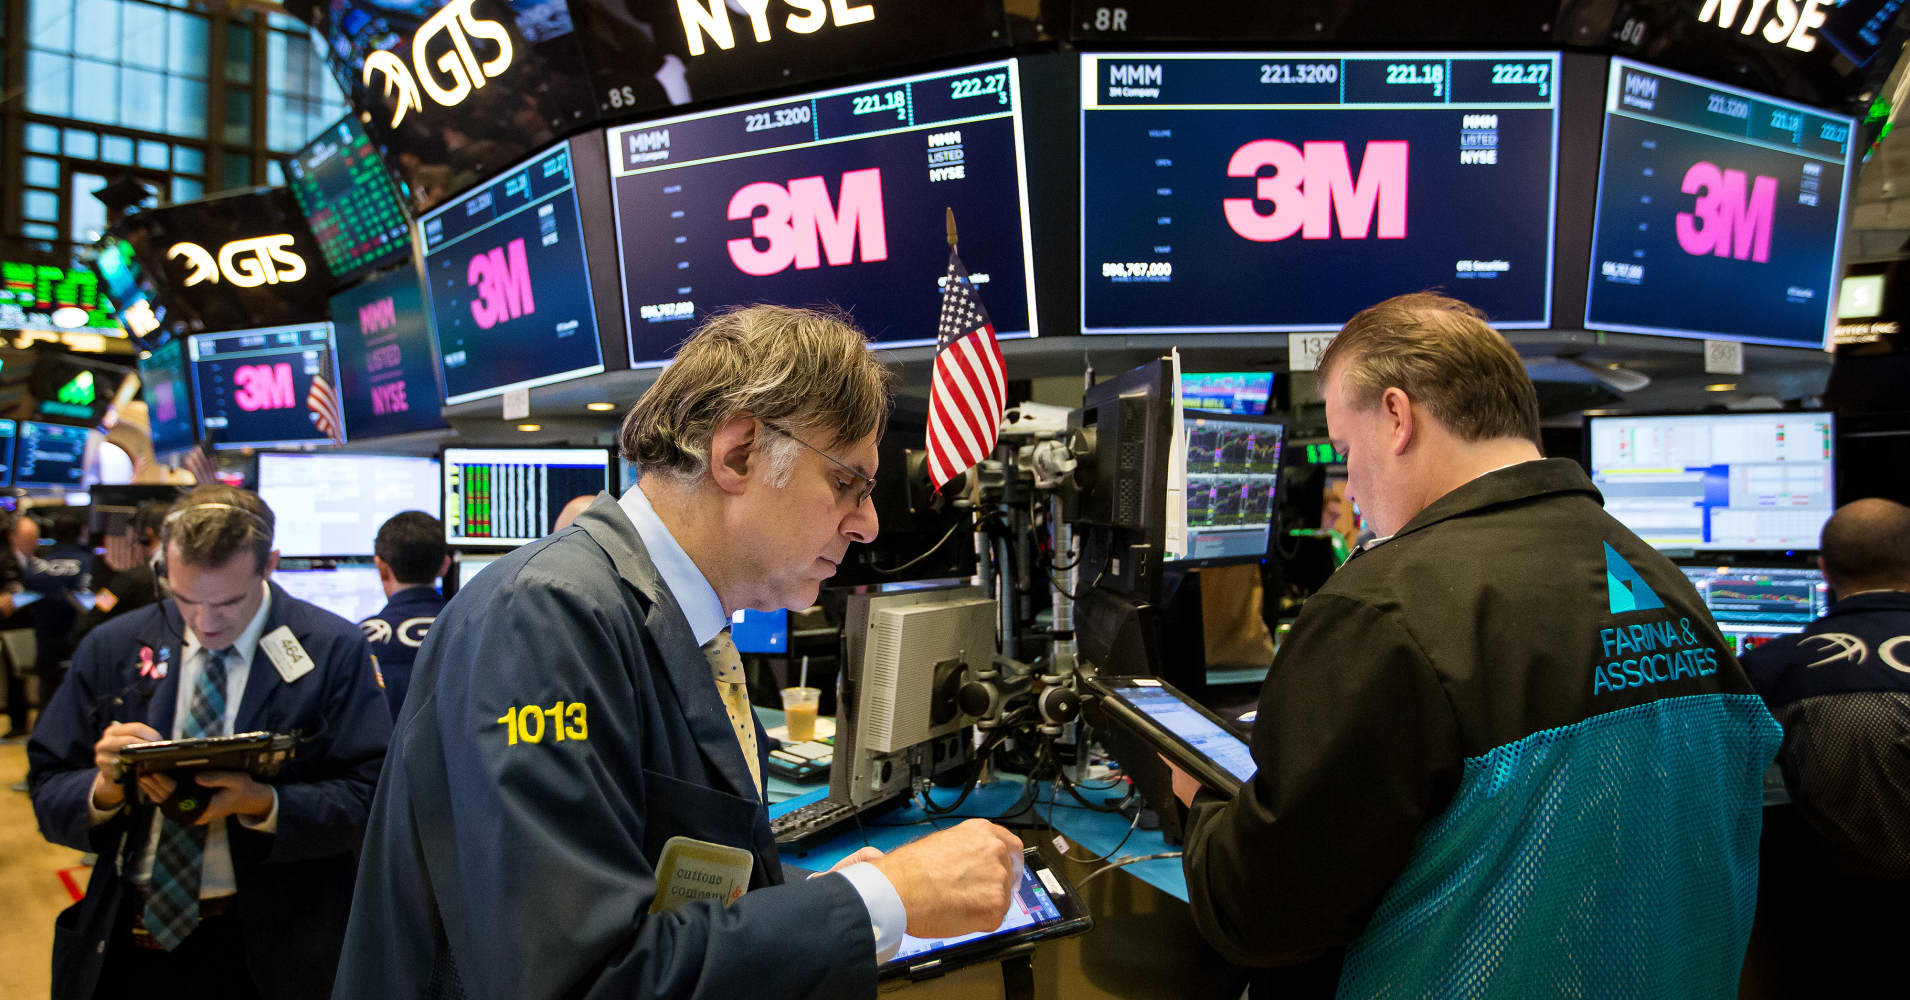 Dow falls more than 100 points as 3M suffers biggest drop in more than 30 years